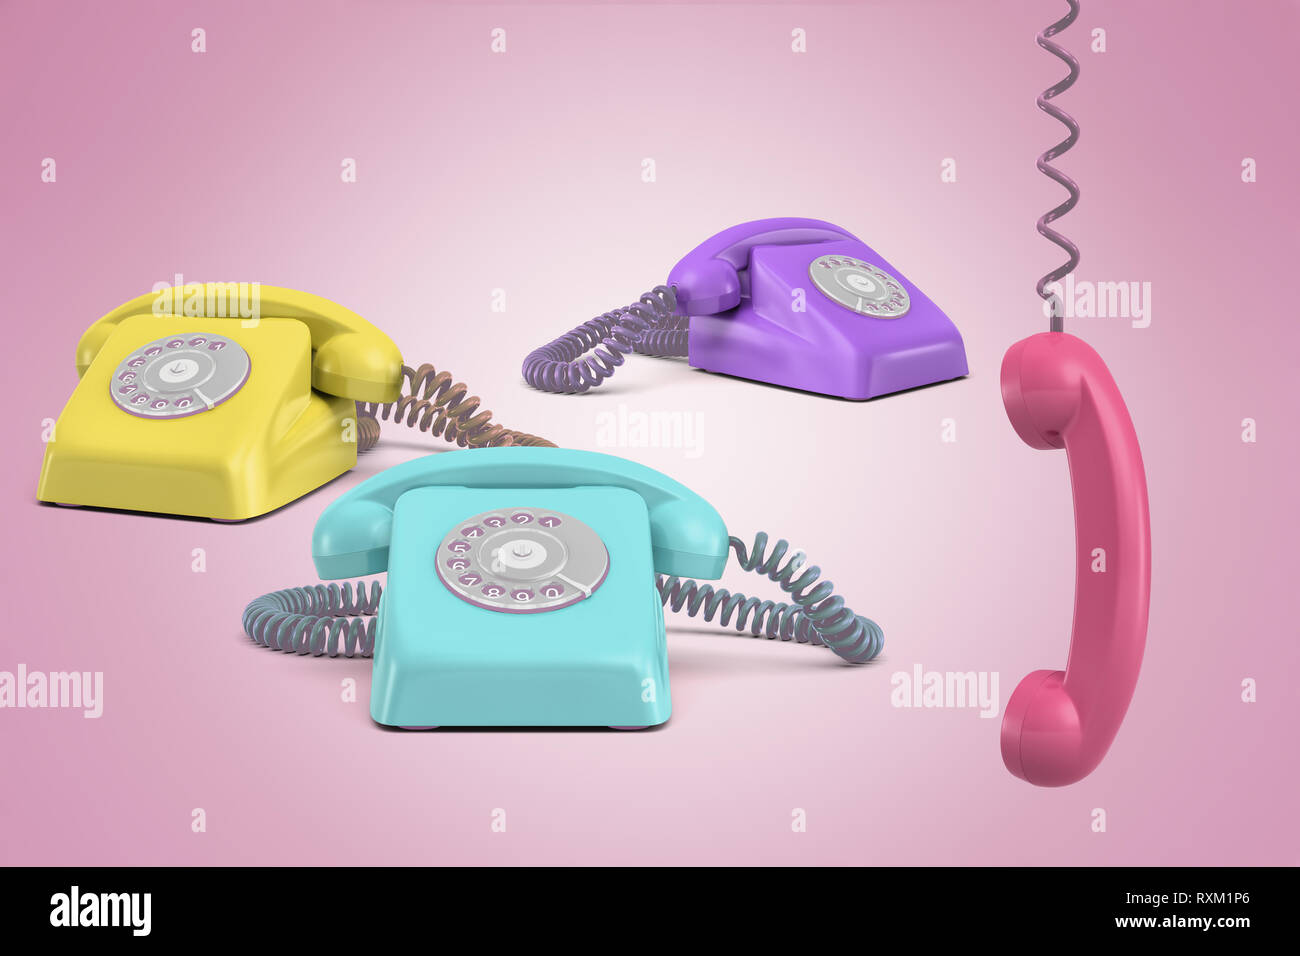 3d rendering of three telephones, purple, yellow and turquois, on a pink background with a pink receiver hanging on its wire. - Stock Image